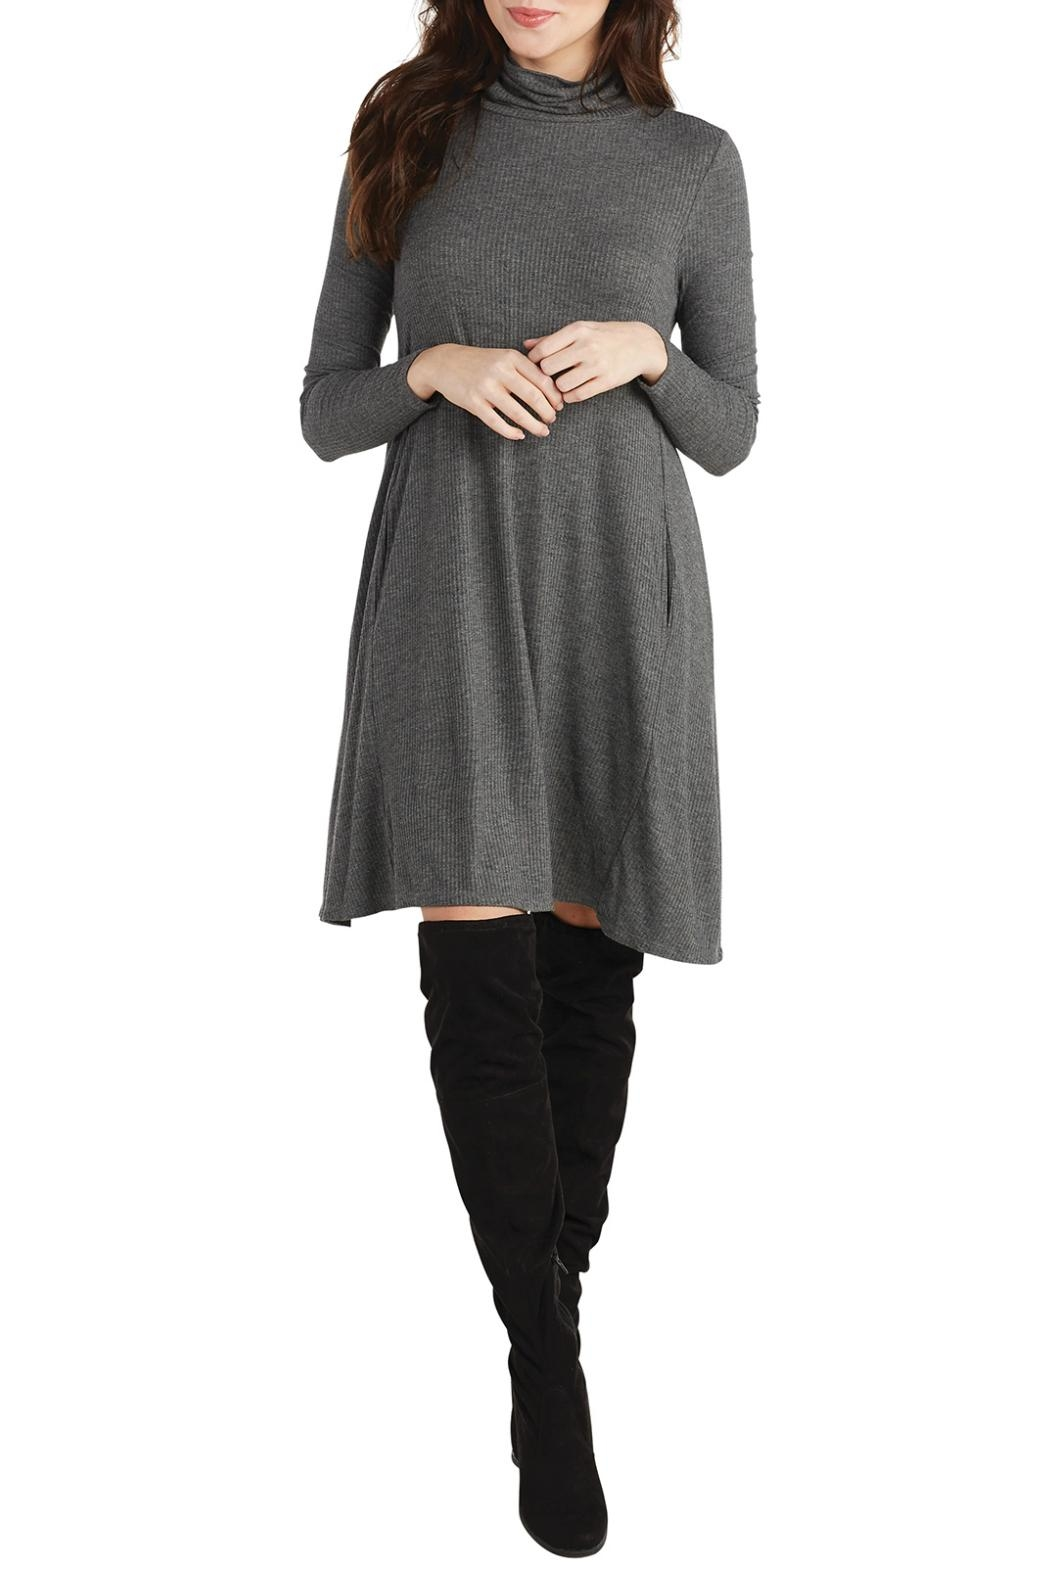 Mud Pie Turtleneck Jersey Dress - Front Cropped Image